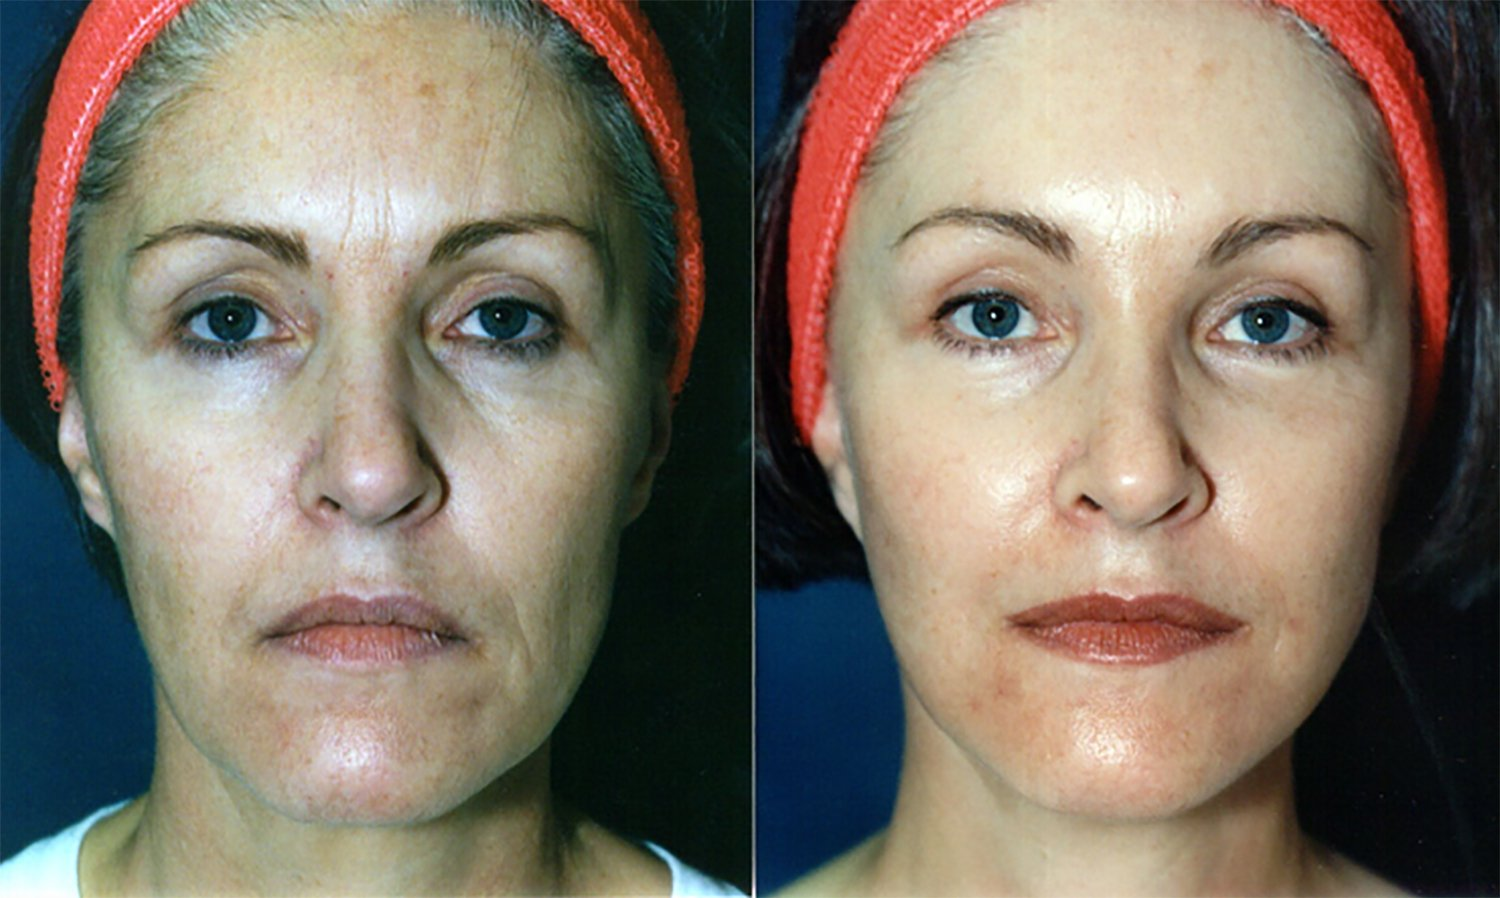 56-year-old facelift browlift 12 months